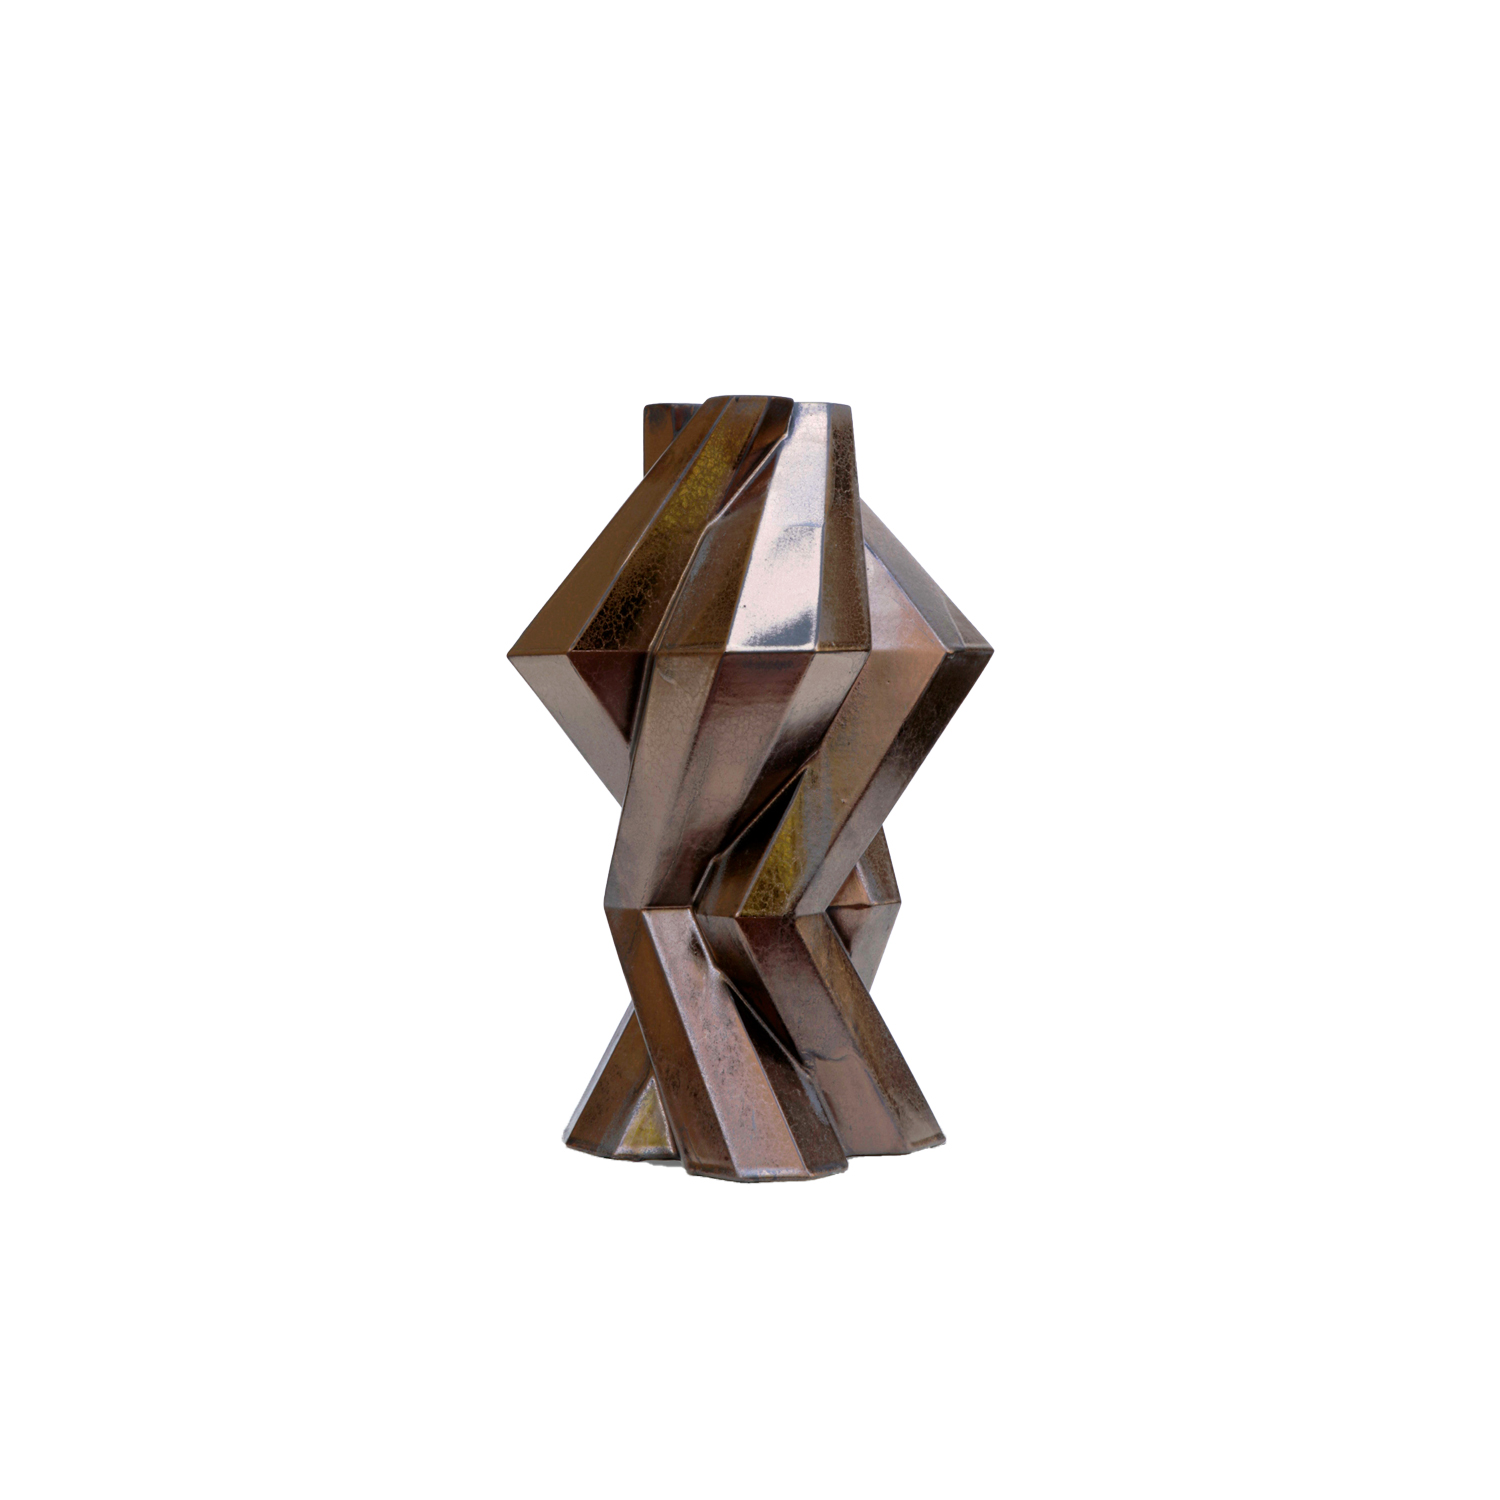 Fortress Column Vase Bronze - Designer Lara Bohinc explores the marriage of ancient and futuristic form in the new Fortress Vase range, which has created a more complex geometric and modern structure from the original inspiration of the octagonal towers at the Diocletian Palace in Croatia. The resulting hexagonal blocks interlock and embrace to allow the play of light and shade on the many surfaces and angles. There are four Fortress shapes: the larger Column and Castle (45cm height), the Pillar (30cm height) and the Tower vase (37cm height). These are hand made from ceramic in a small Italian artisanal workshop and come in three finishes: dark gold, bronze and speckled white.  | Matter of Stuff